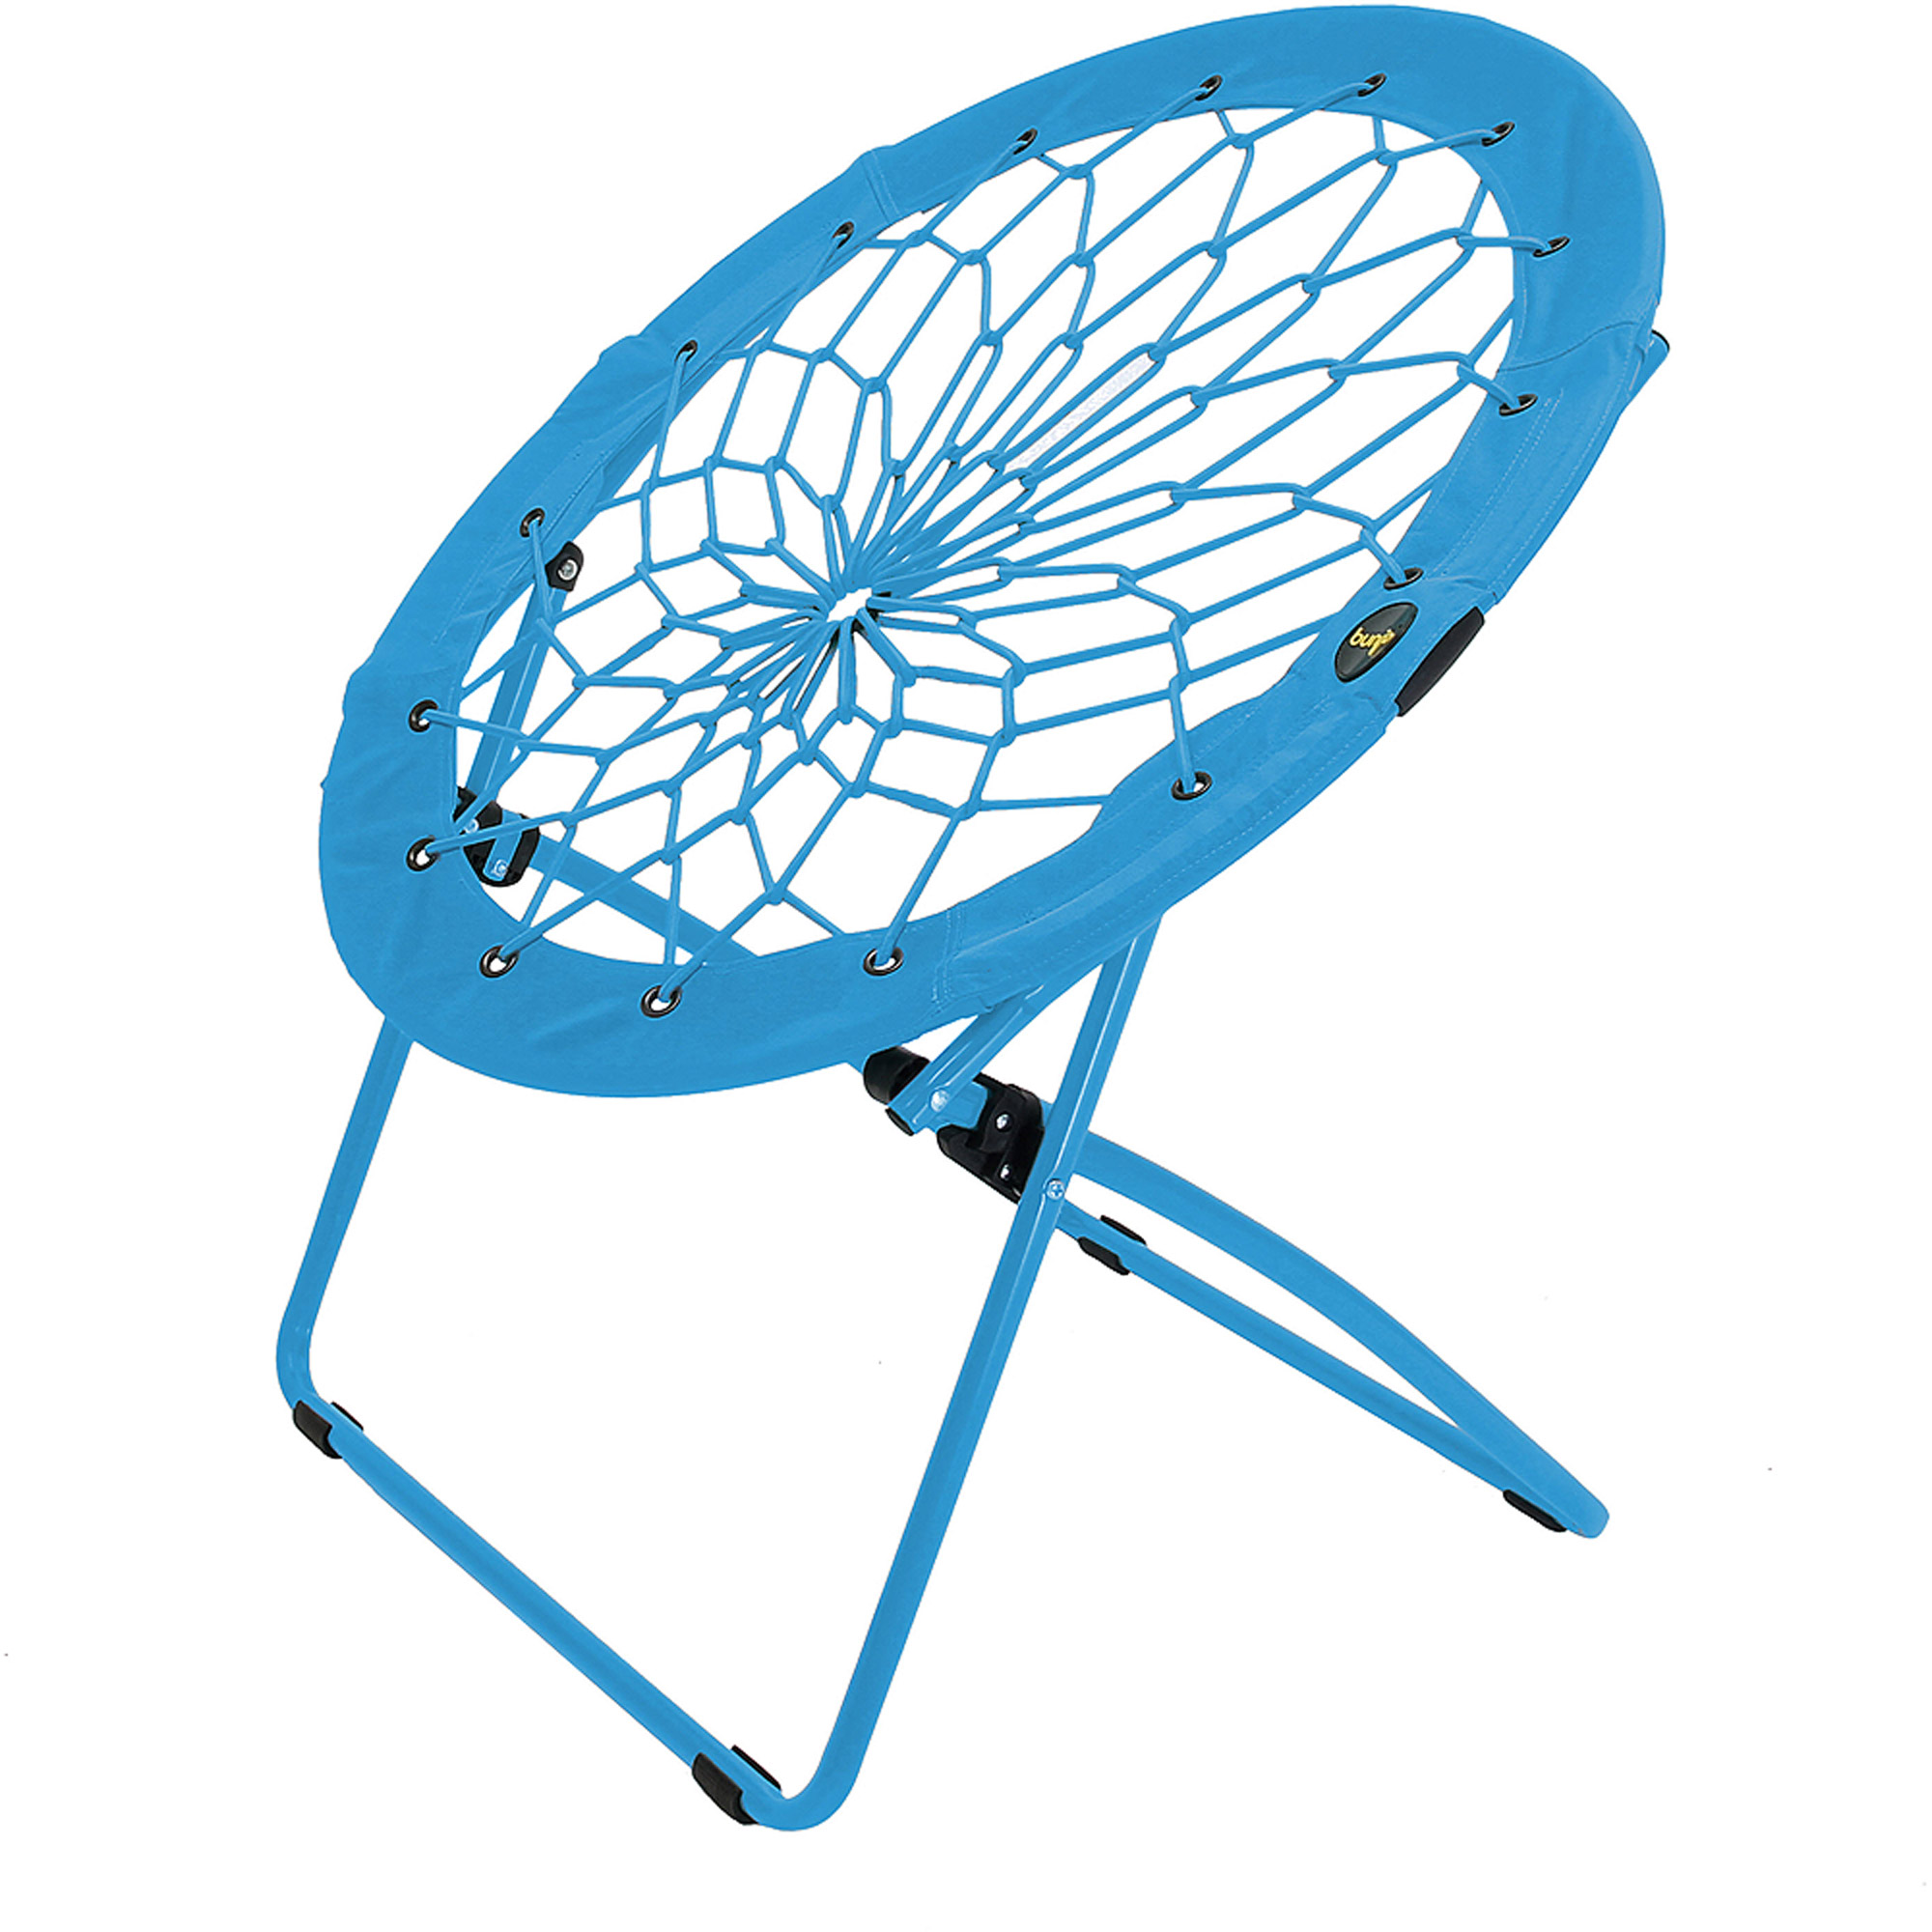 Sensational 32 Bunjo Bungee Chair Available In Multiple Colors Download Free Architecture Designs Rallybritishbridgeorg